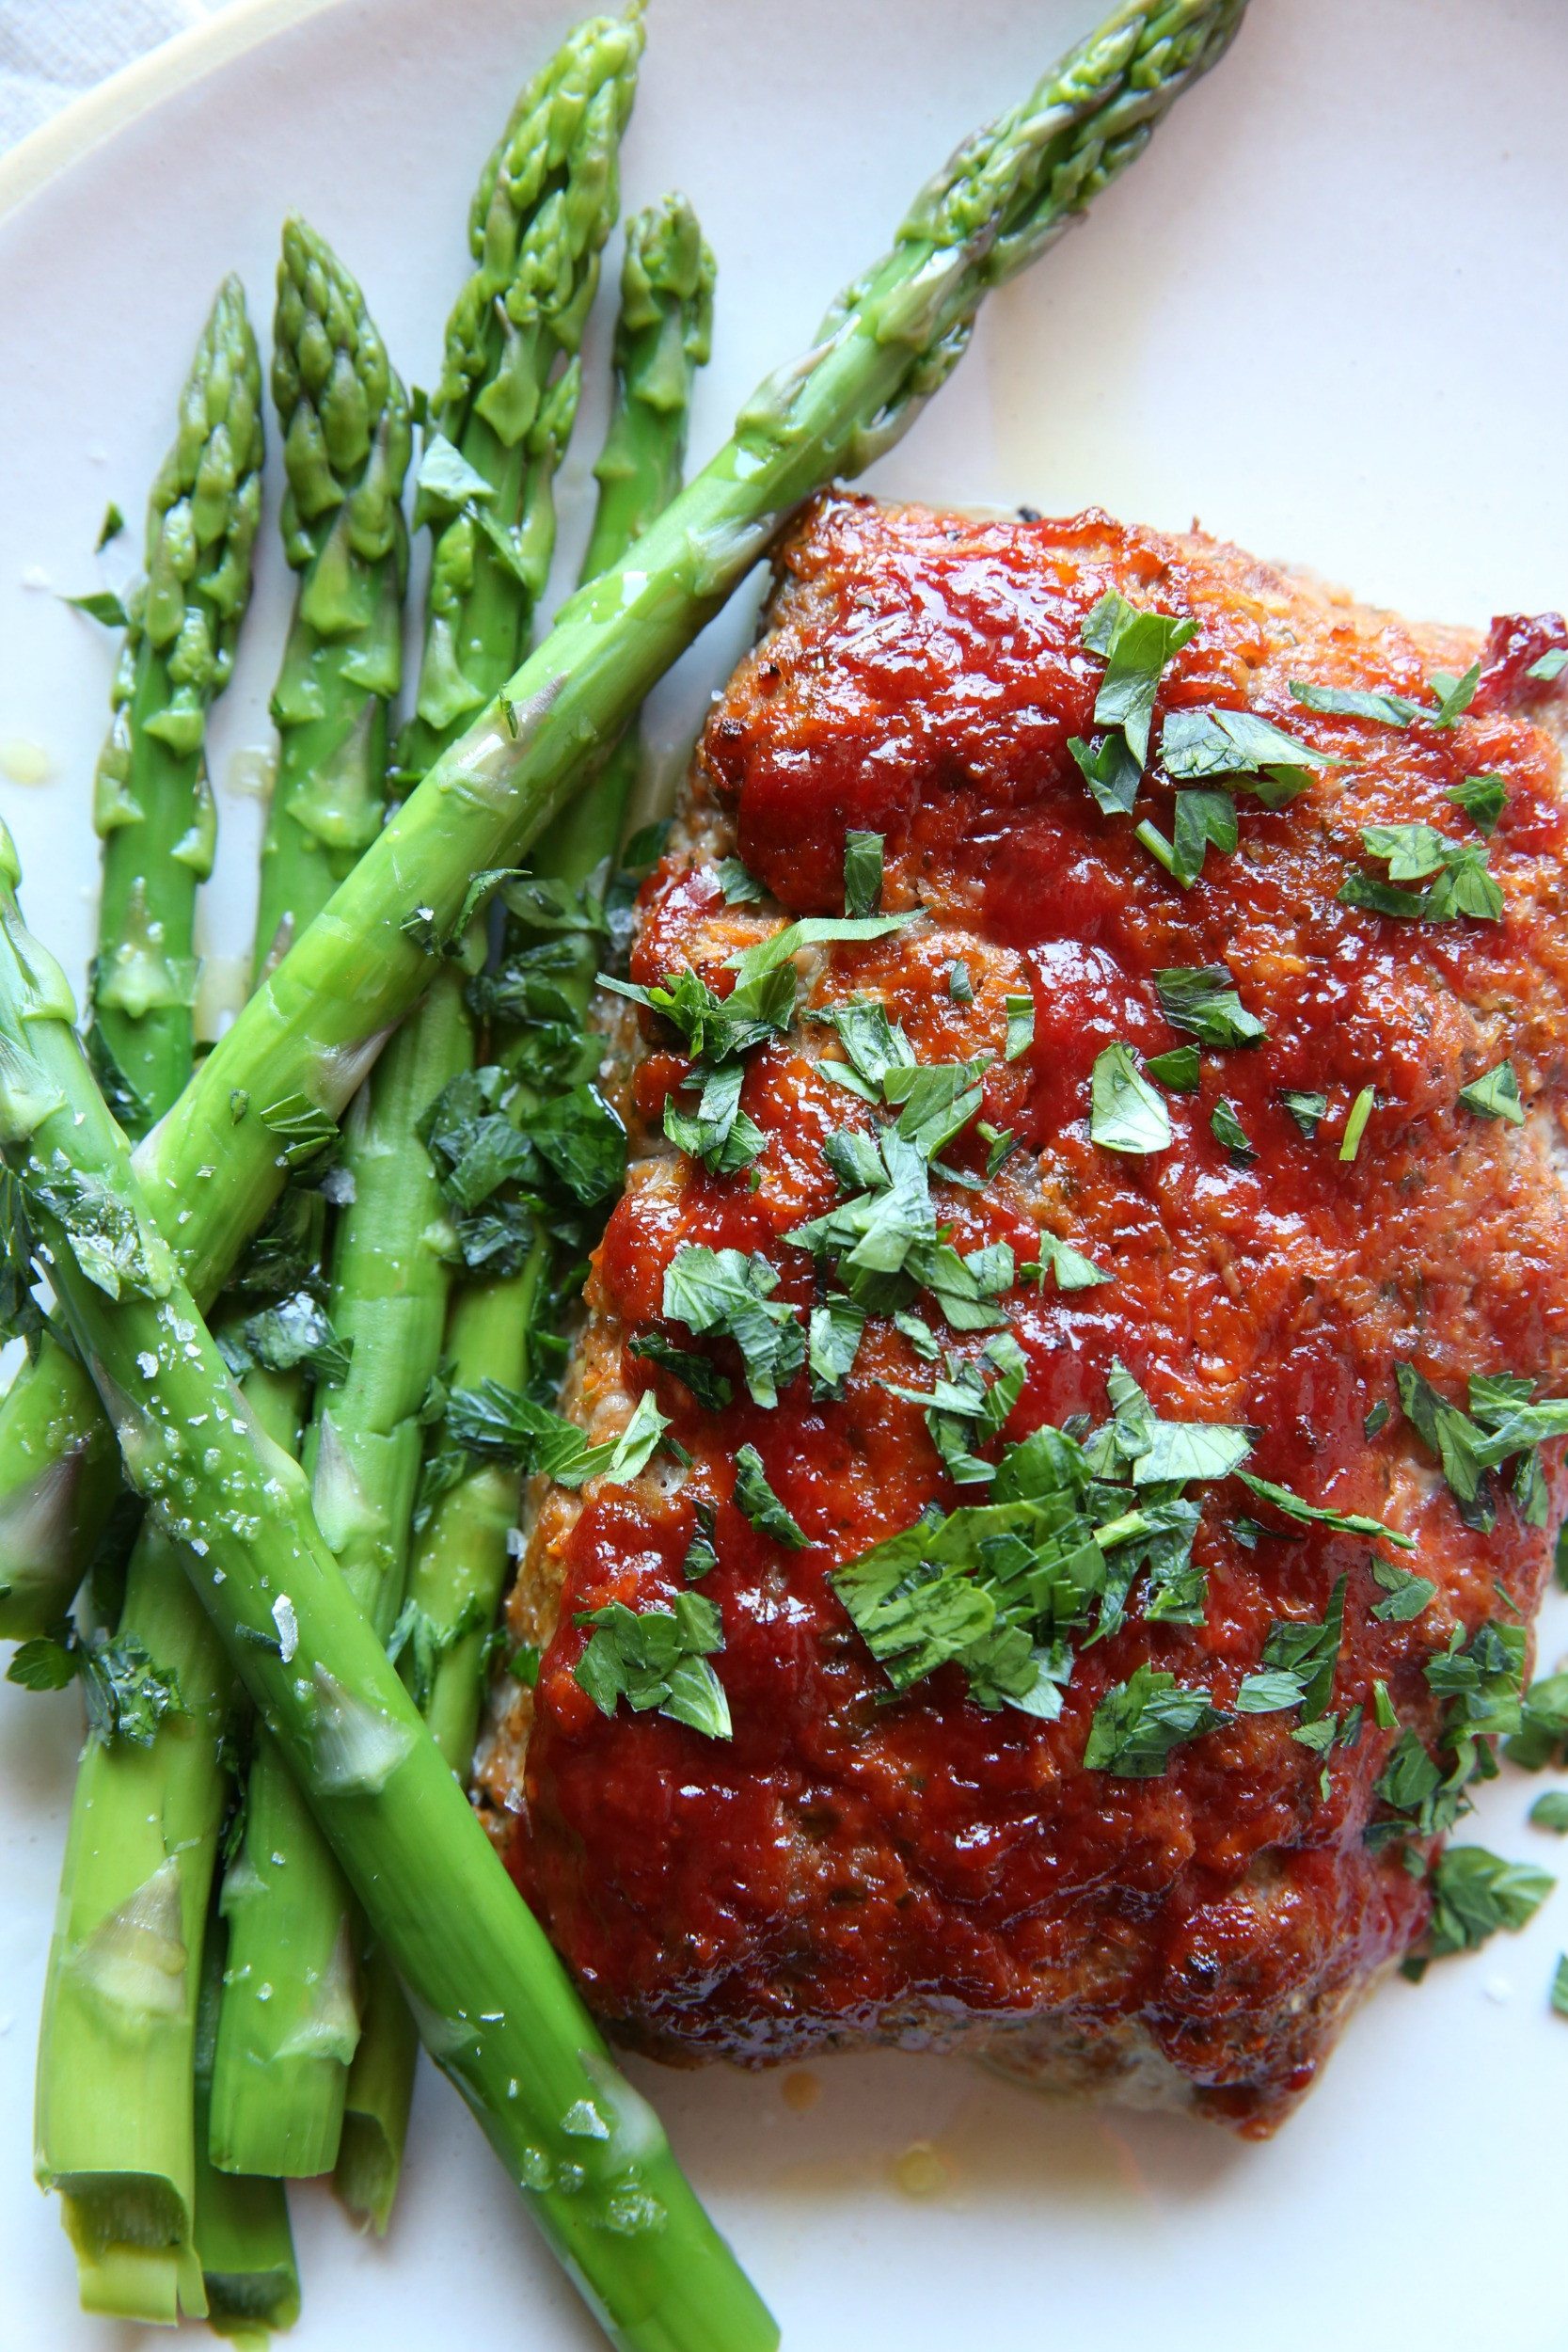 Healthy Side Dishes For Meatloaf  12 Healthy Meatloaf Recipes How To Make Healthy Meatloaf